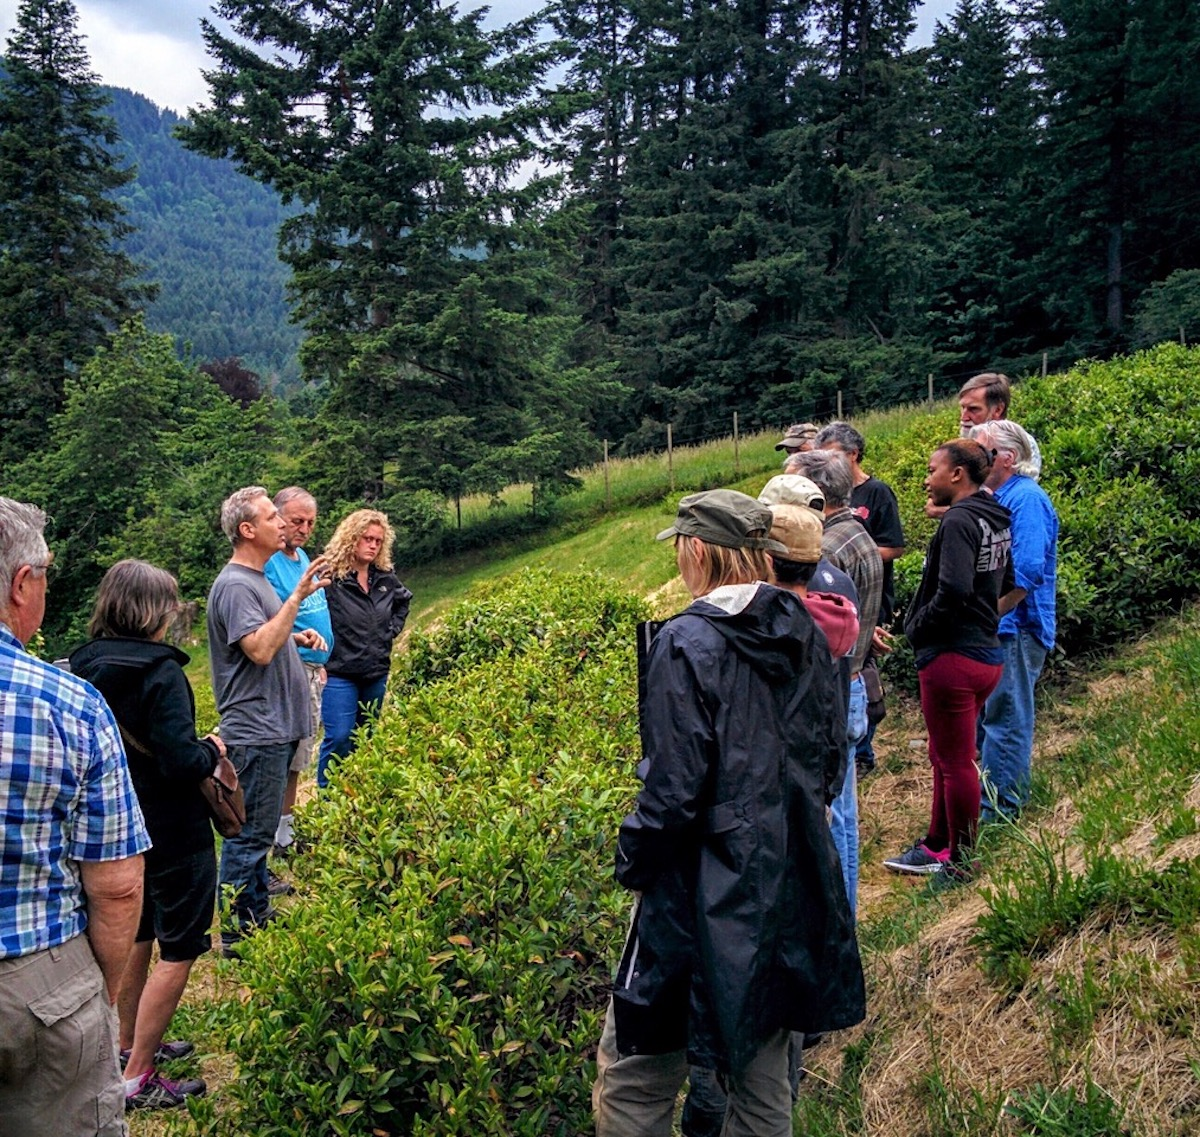 Westholme Tea Farm owner Victor Vesely (middle, gray shirt) leads a tour in the tea terraces